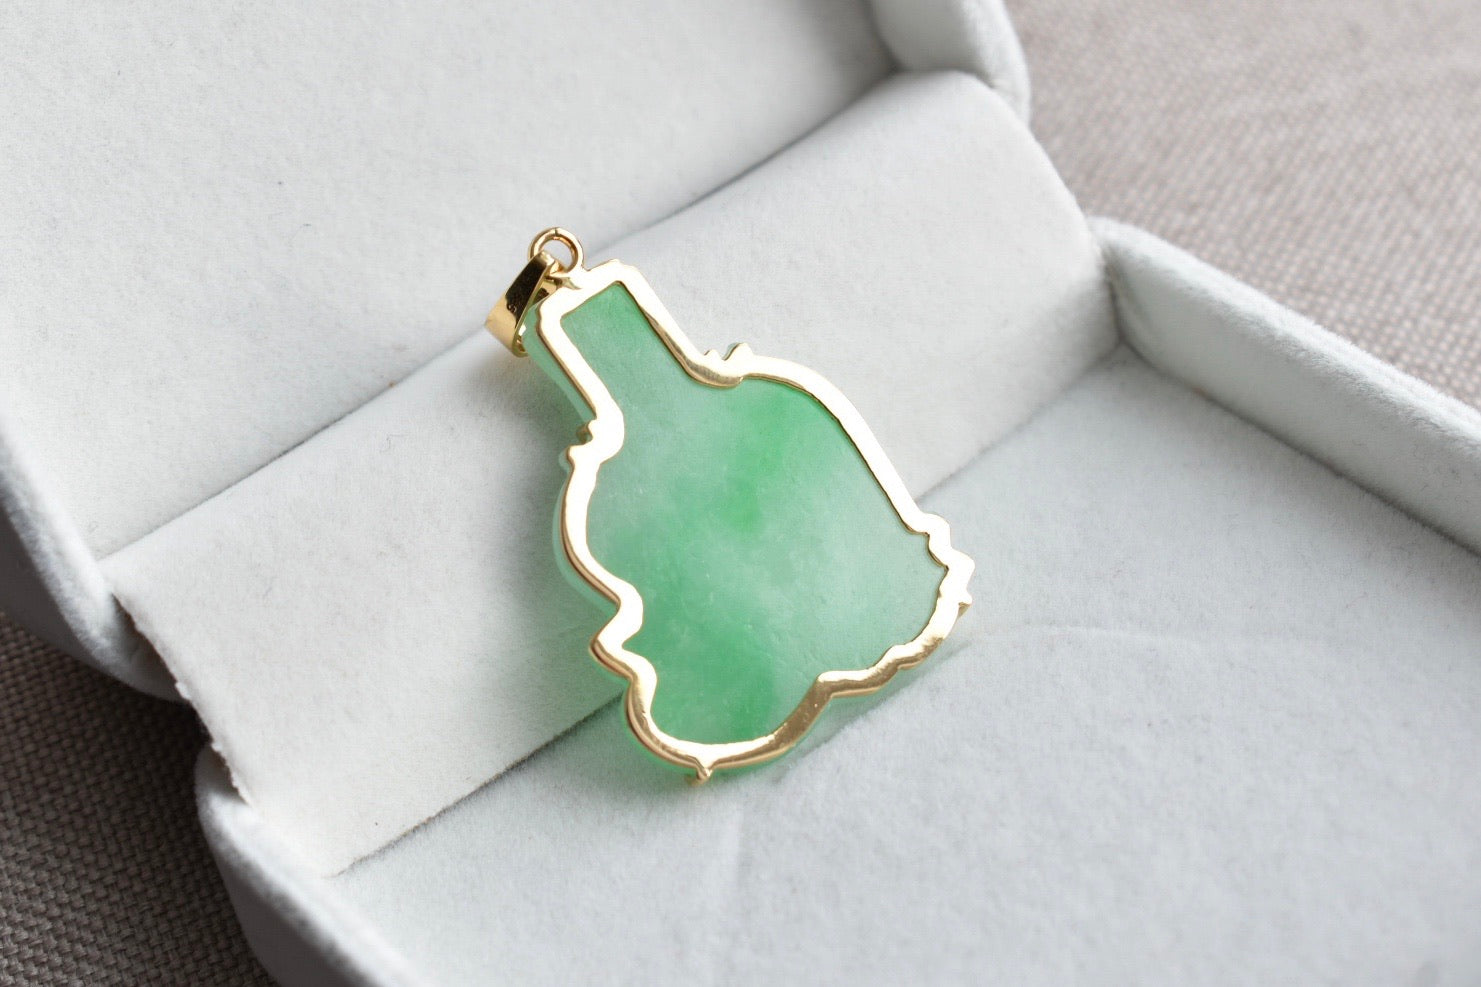 Natural Translucent Moss In Snow Jadeite Jade God Of Wealth Pendant in 14K Yellow Gold